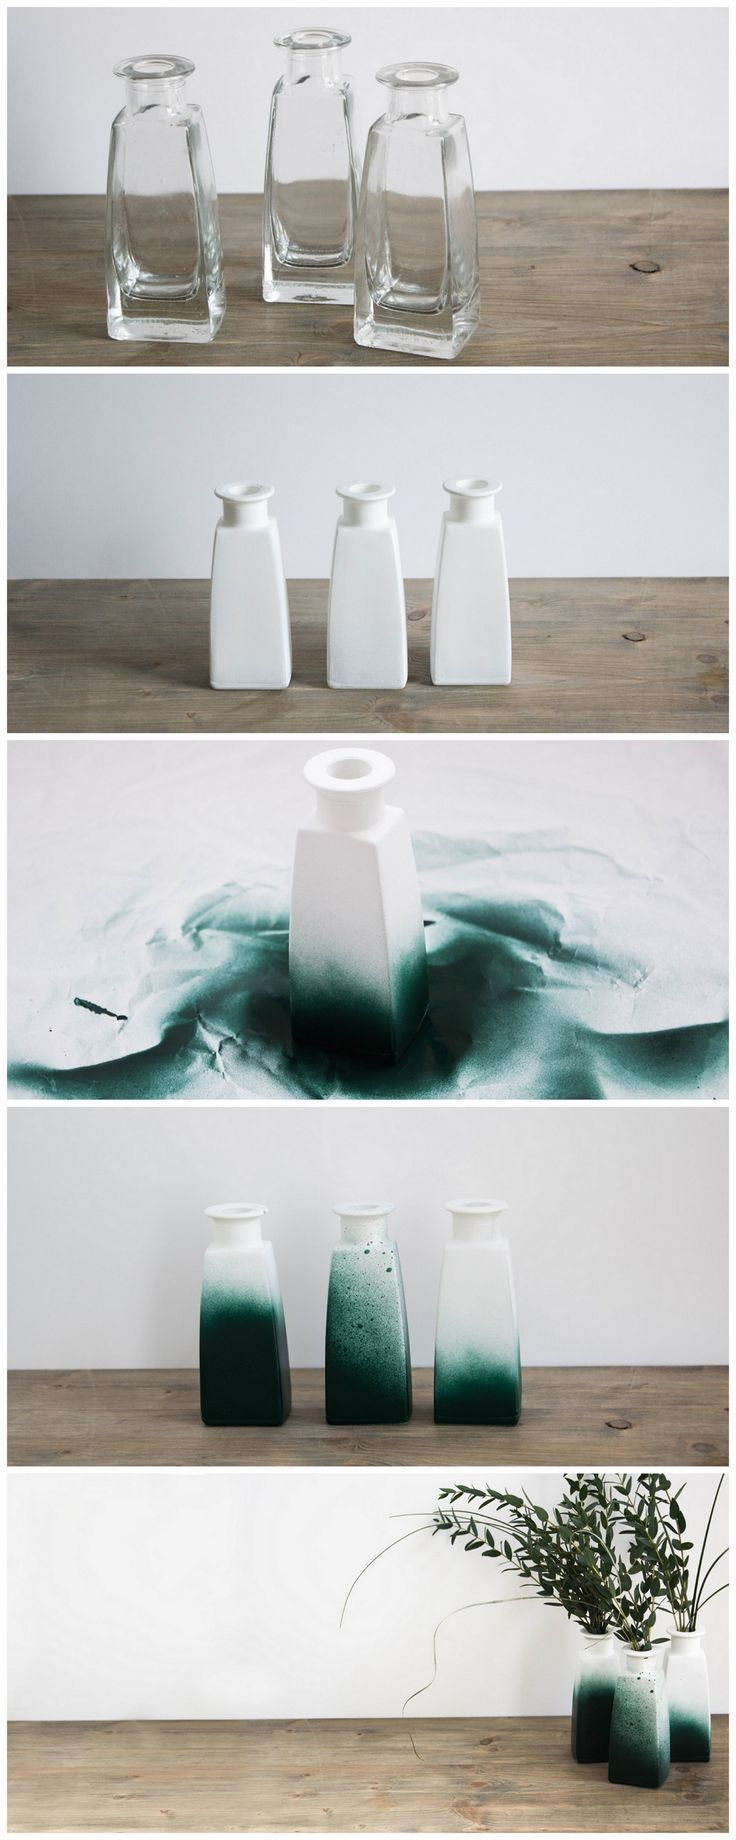 schere leim papier for Frosch Blog: vase upcycling with green colour